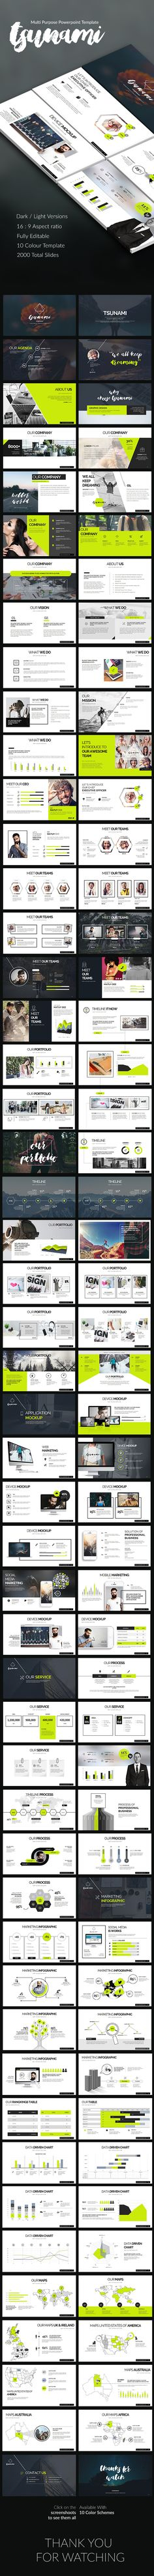 Embassy Powerpoint Presentation Powerpoint Templates Pinterest - Fresh tsunami powerpoint presentation design